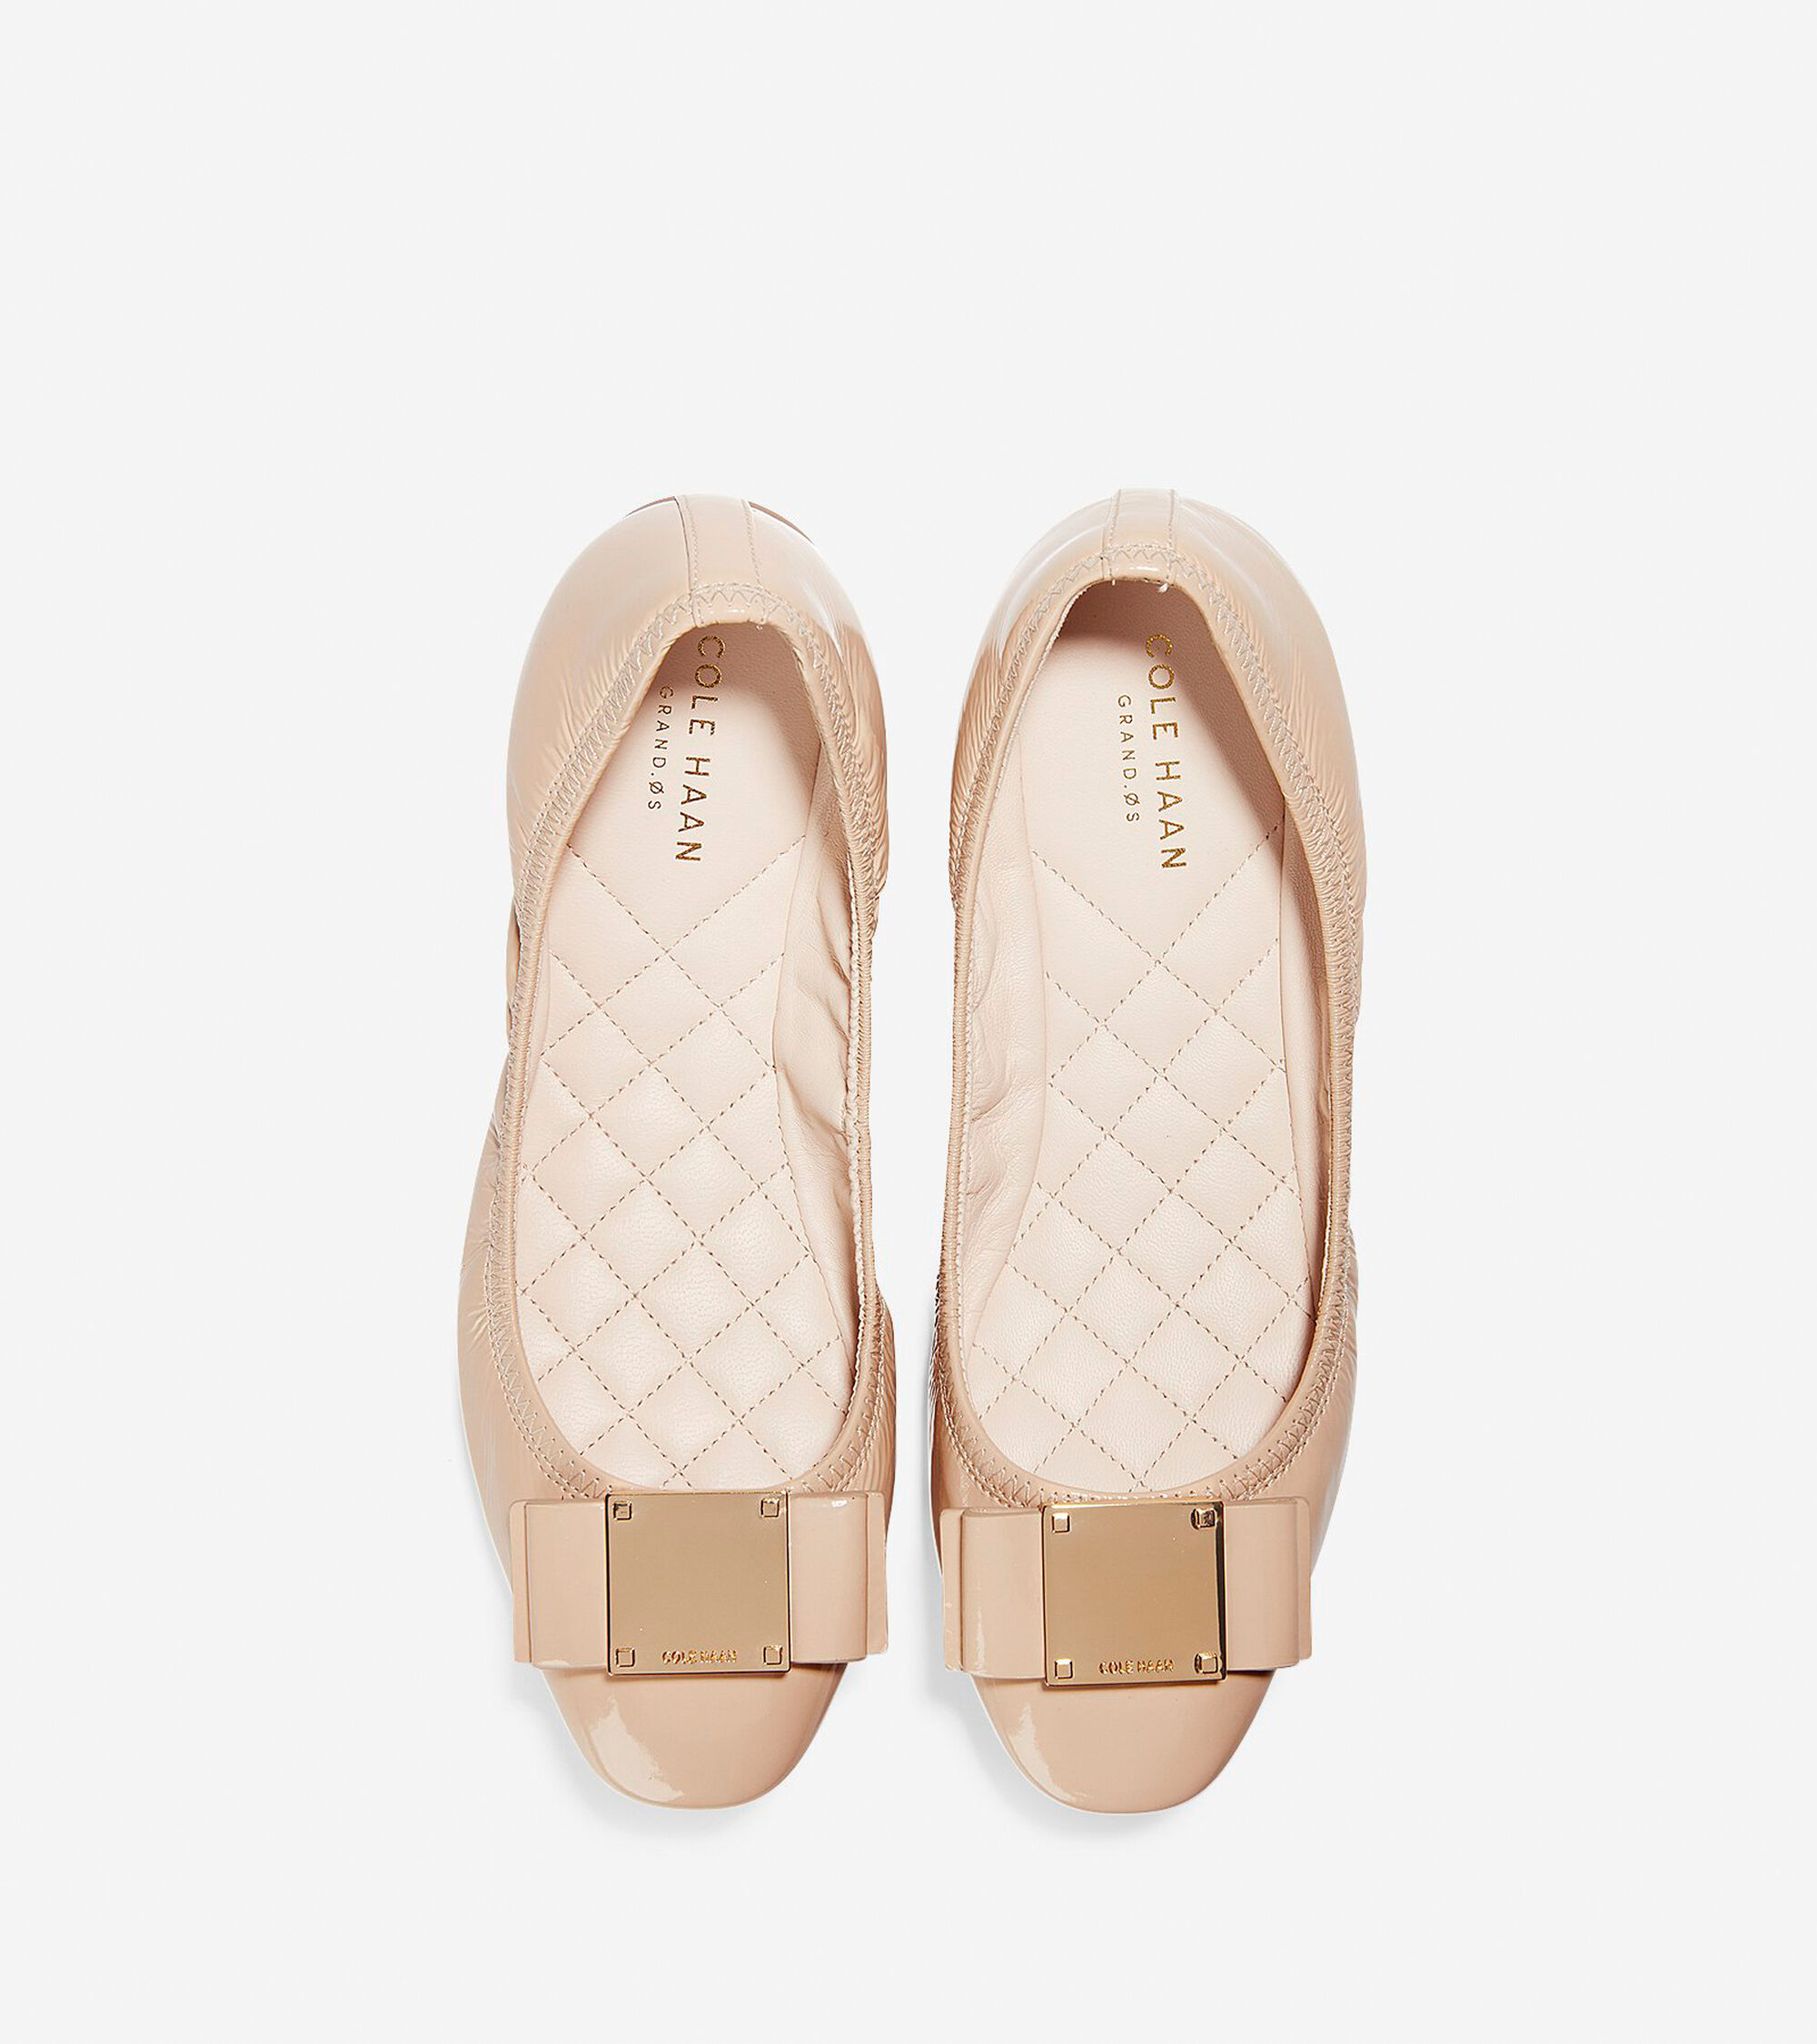 77bad9185a6 Women s Tali Modern Bow Ballet Flats in Nude Patent